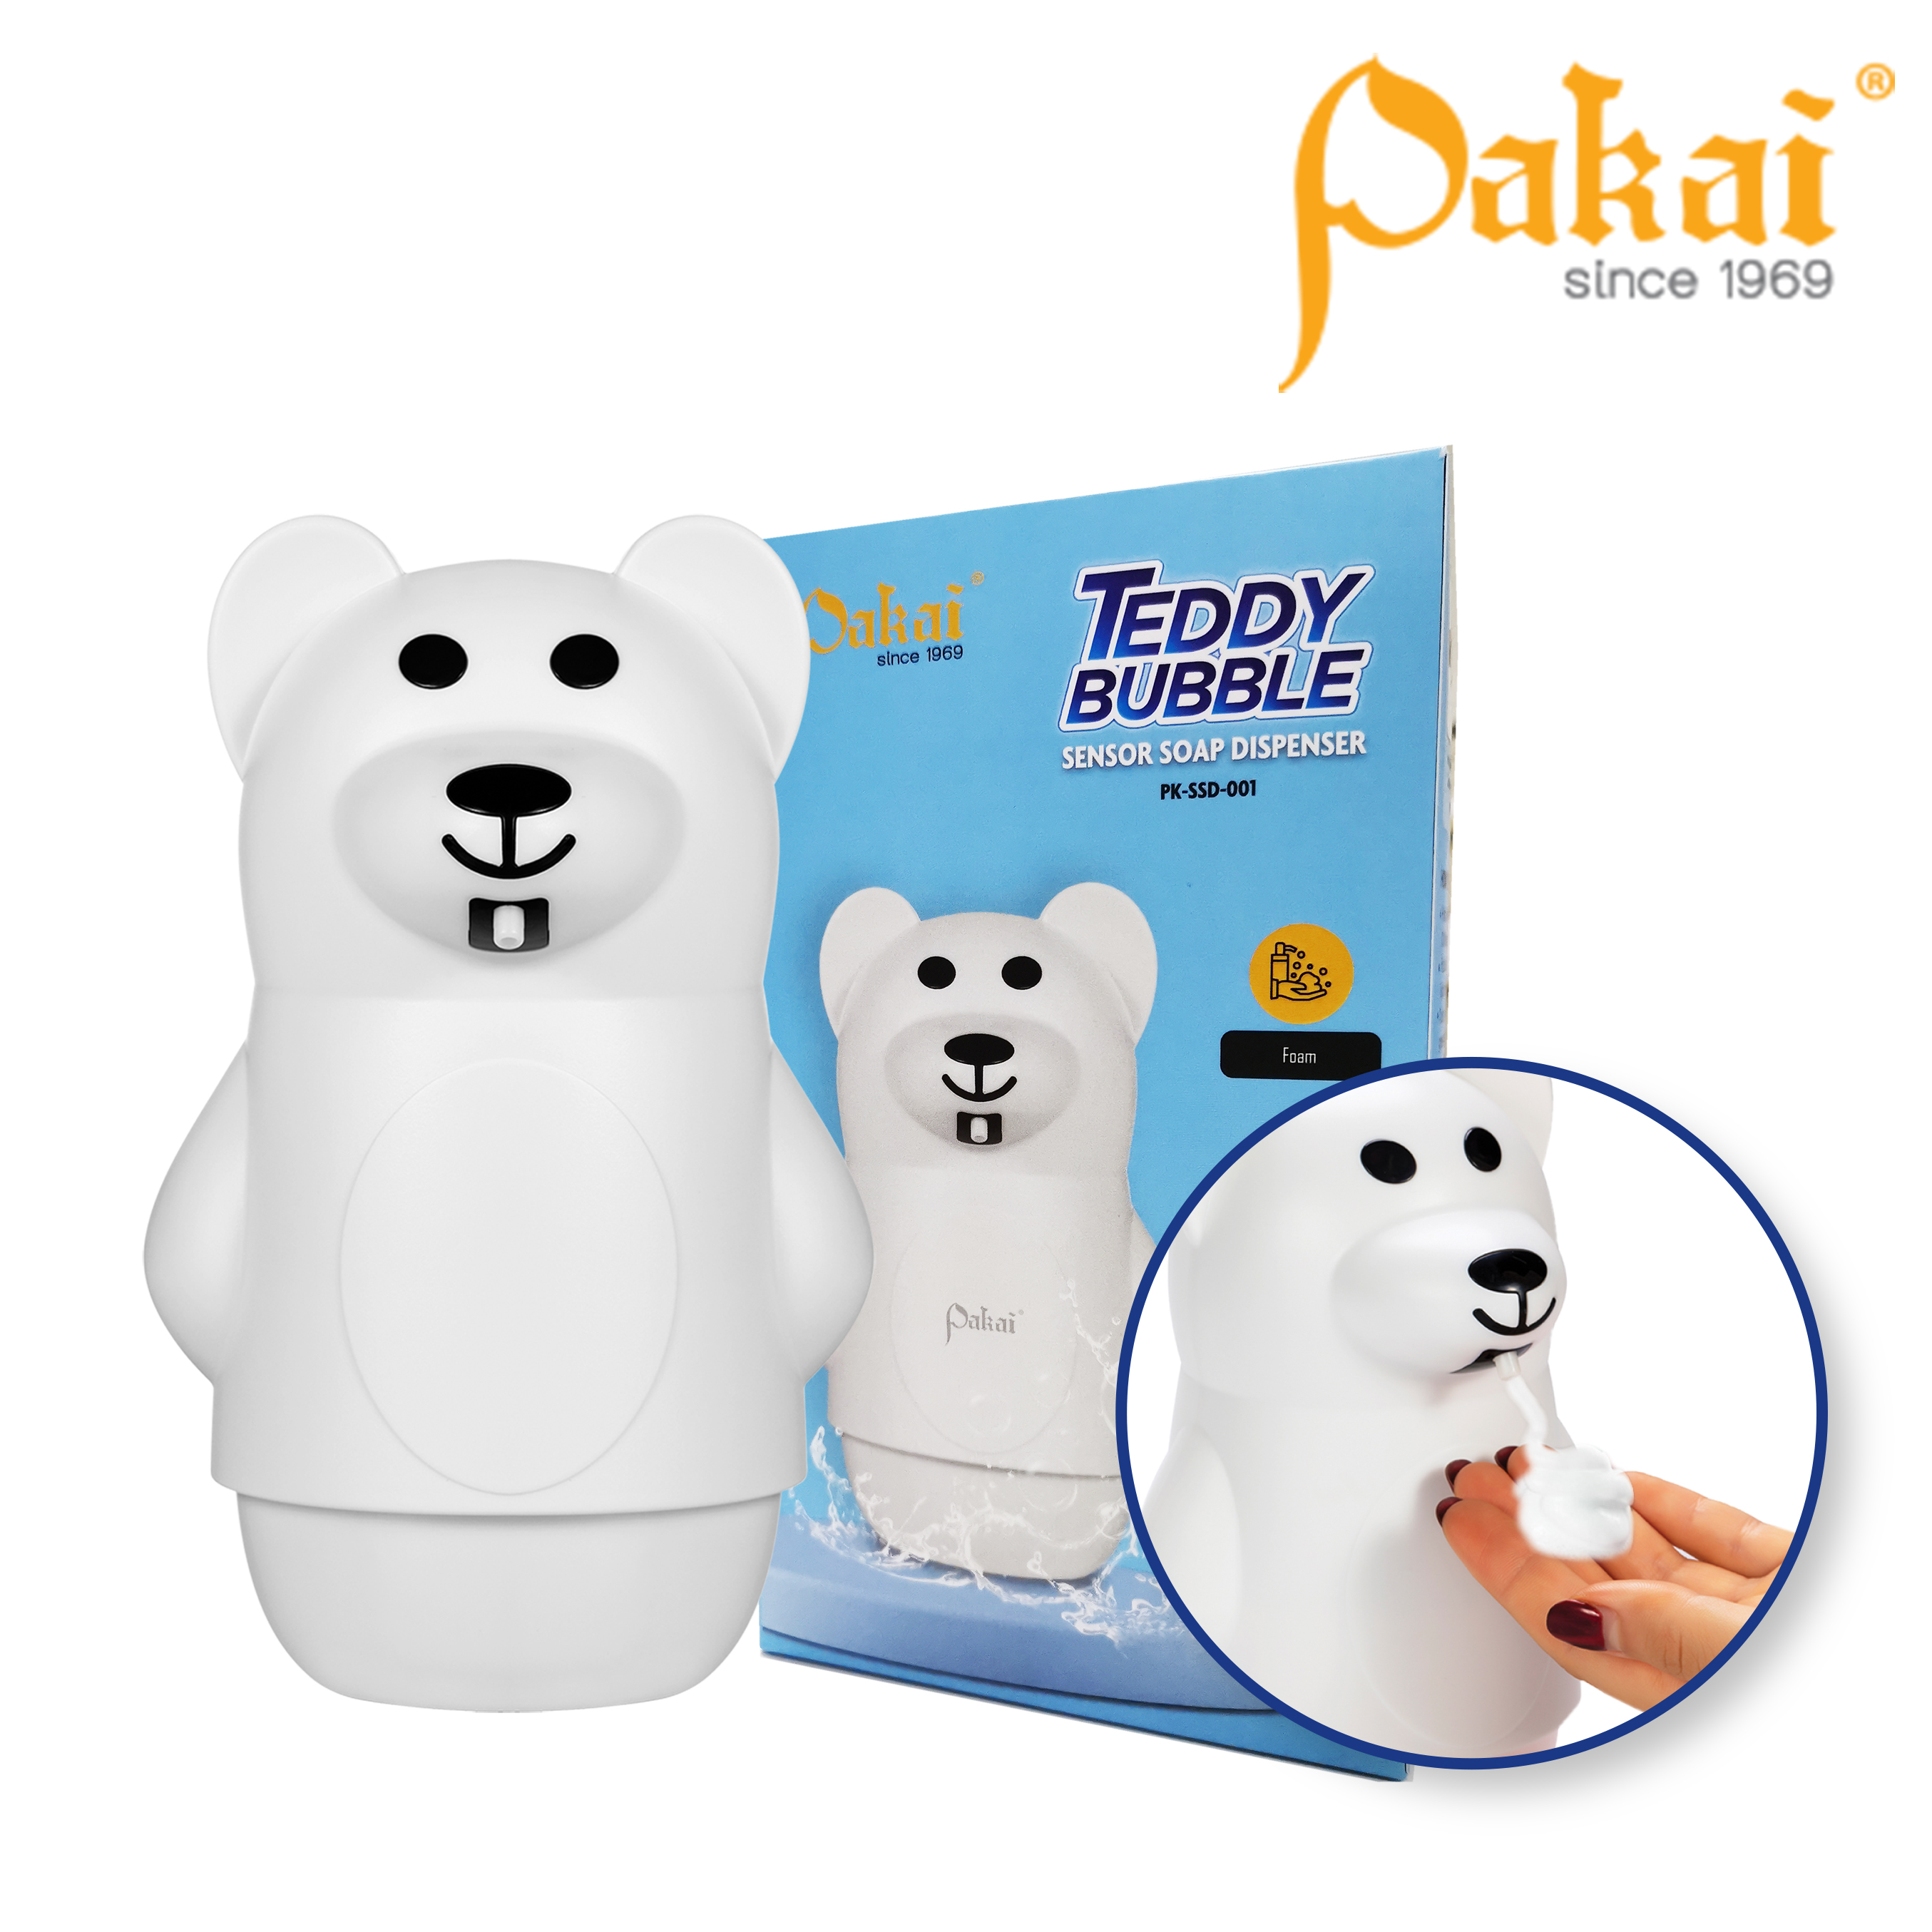 Pakai Teddy Bubble Soap Dispenser PK-SSD-001